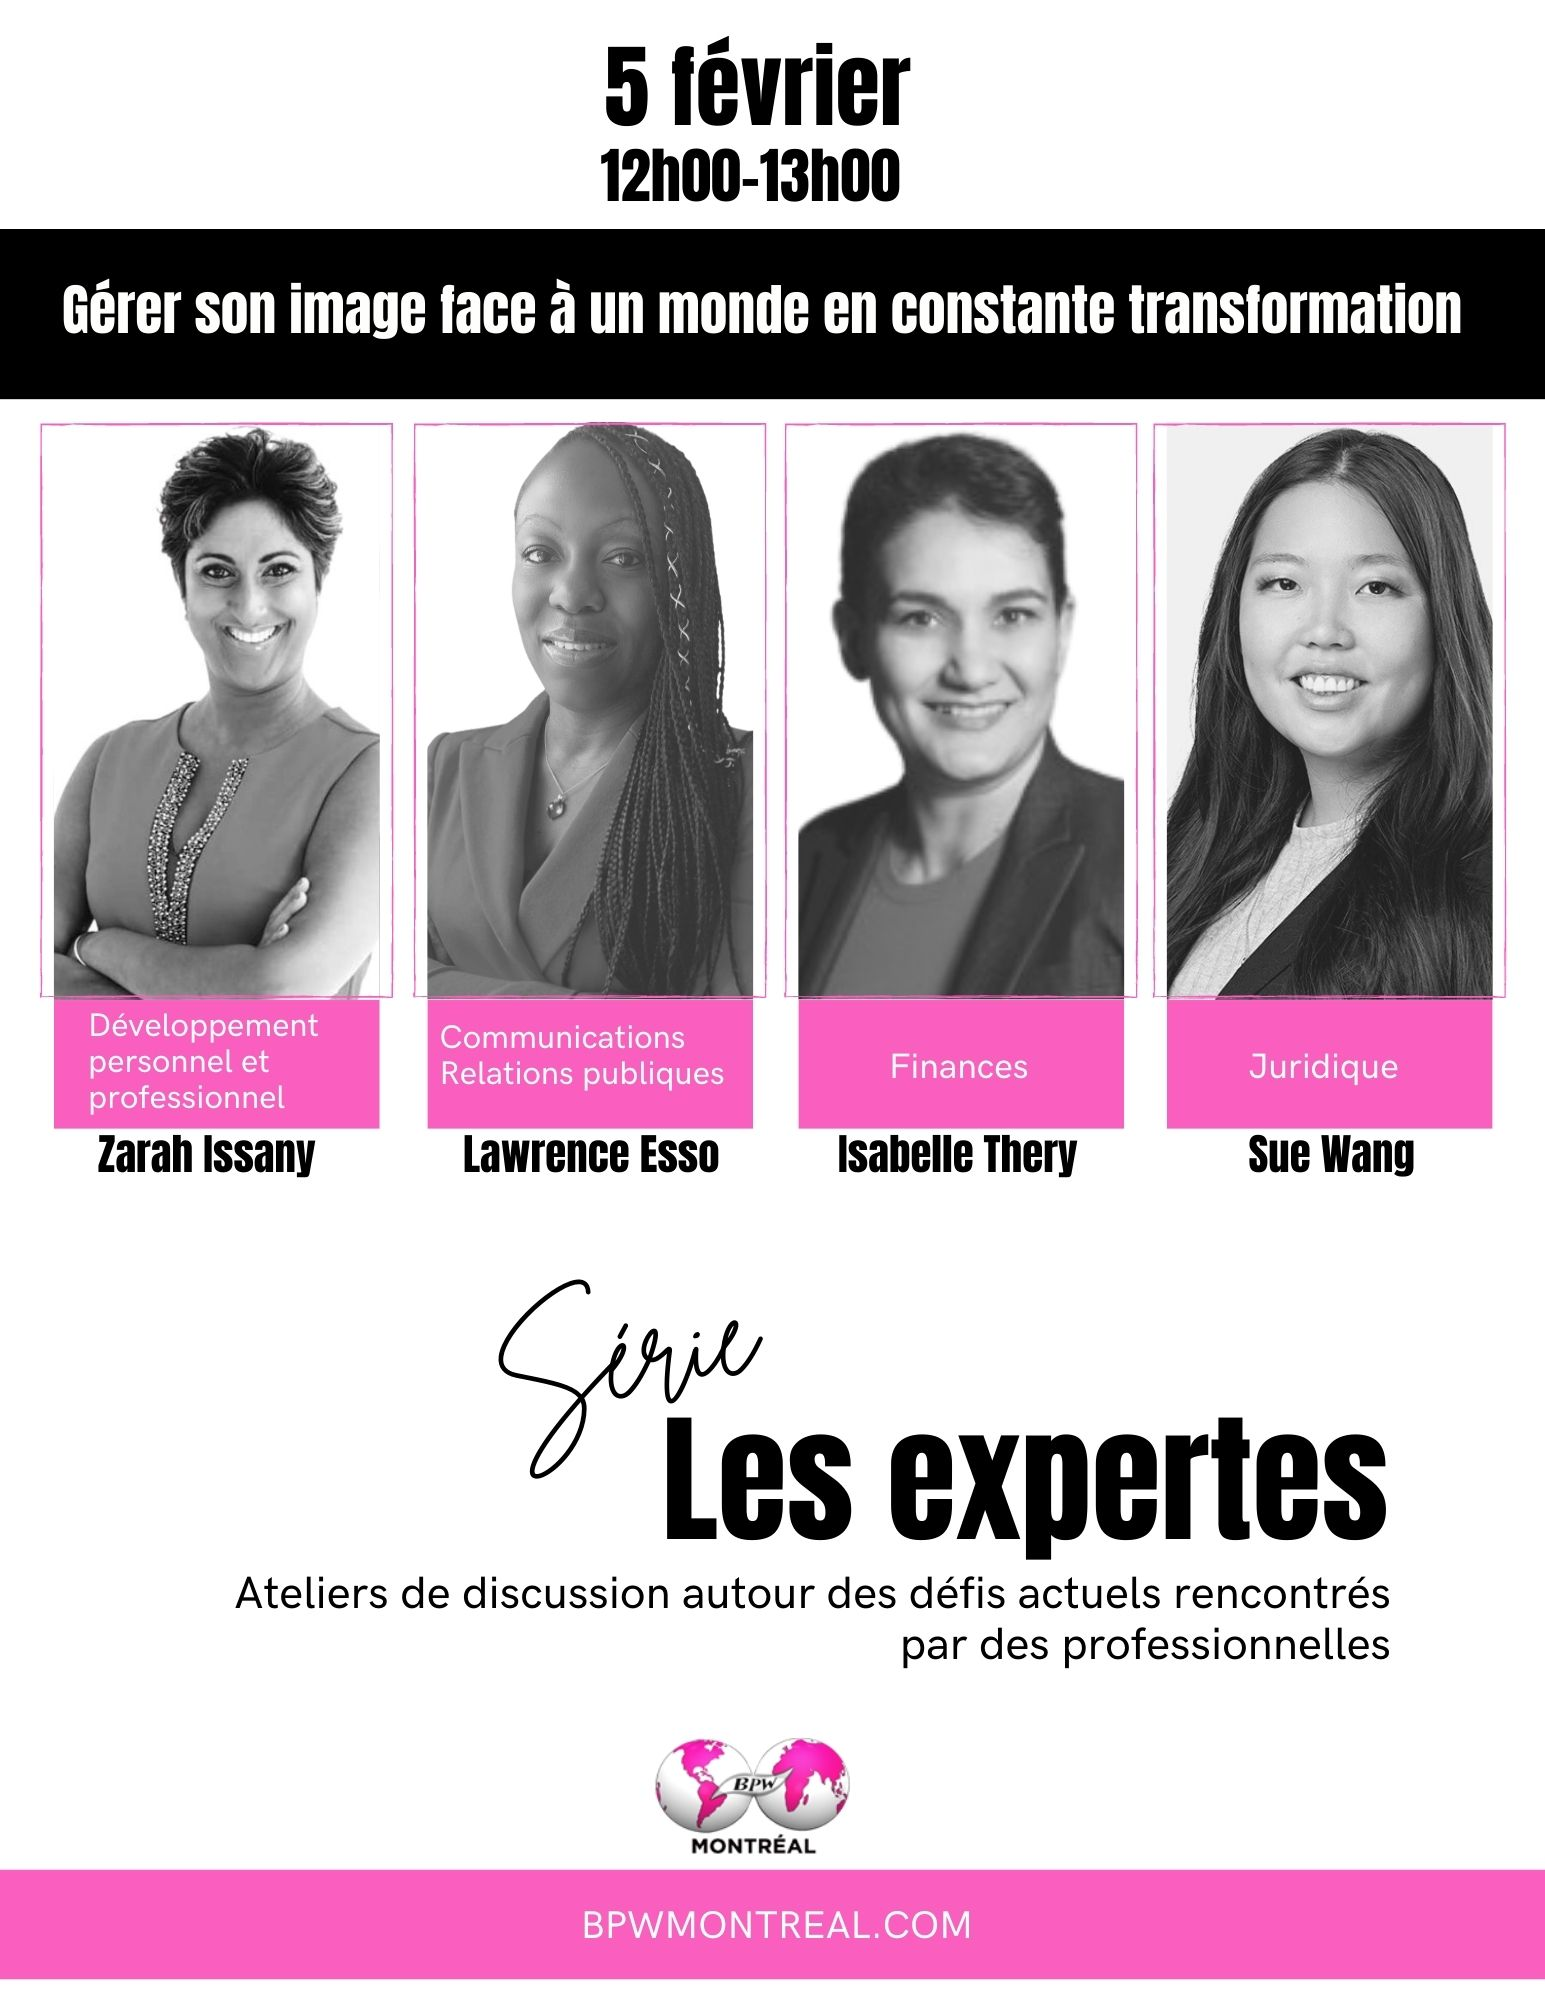 LES EXPERTES | Atelier #1: Gérer son image face à un monde en constante évolution reviews, opinions and consumer feedback